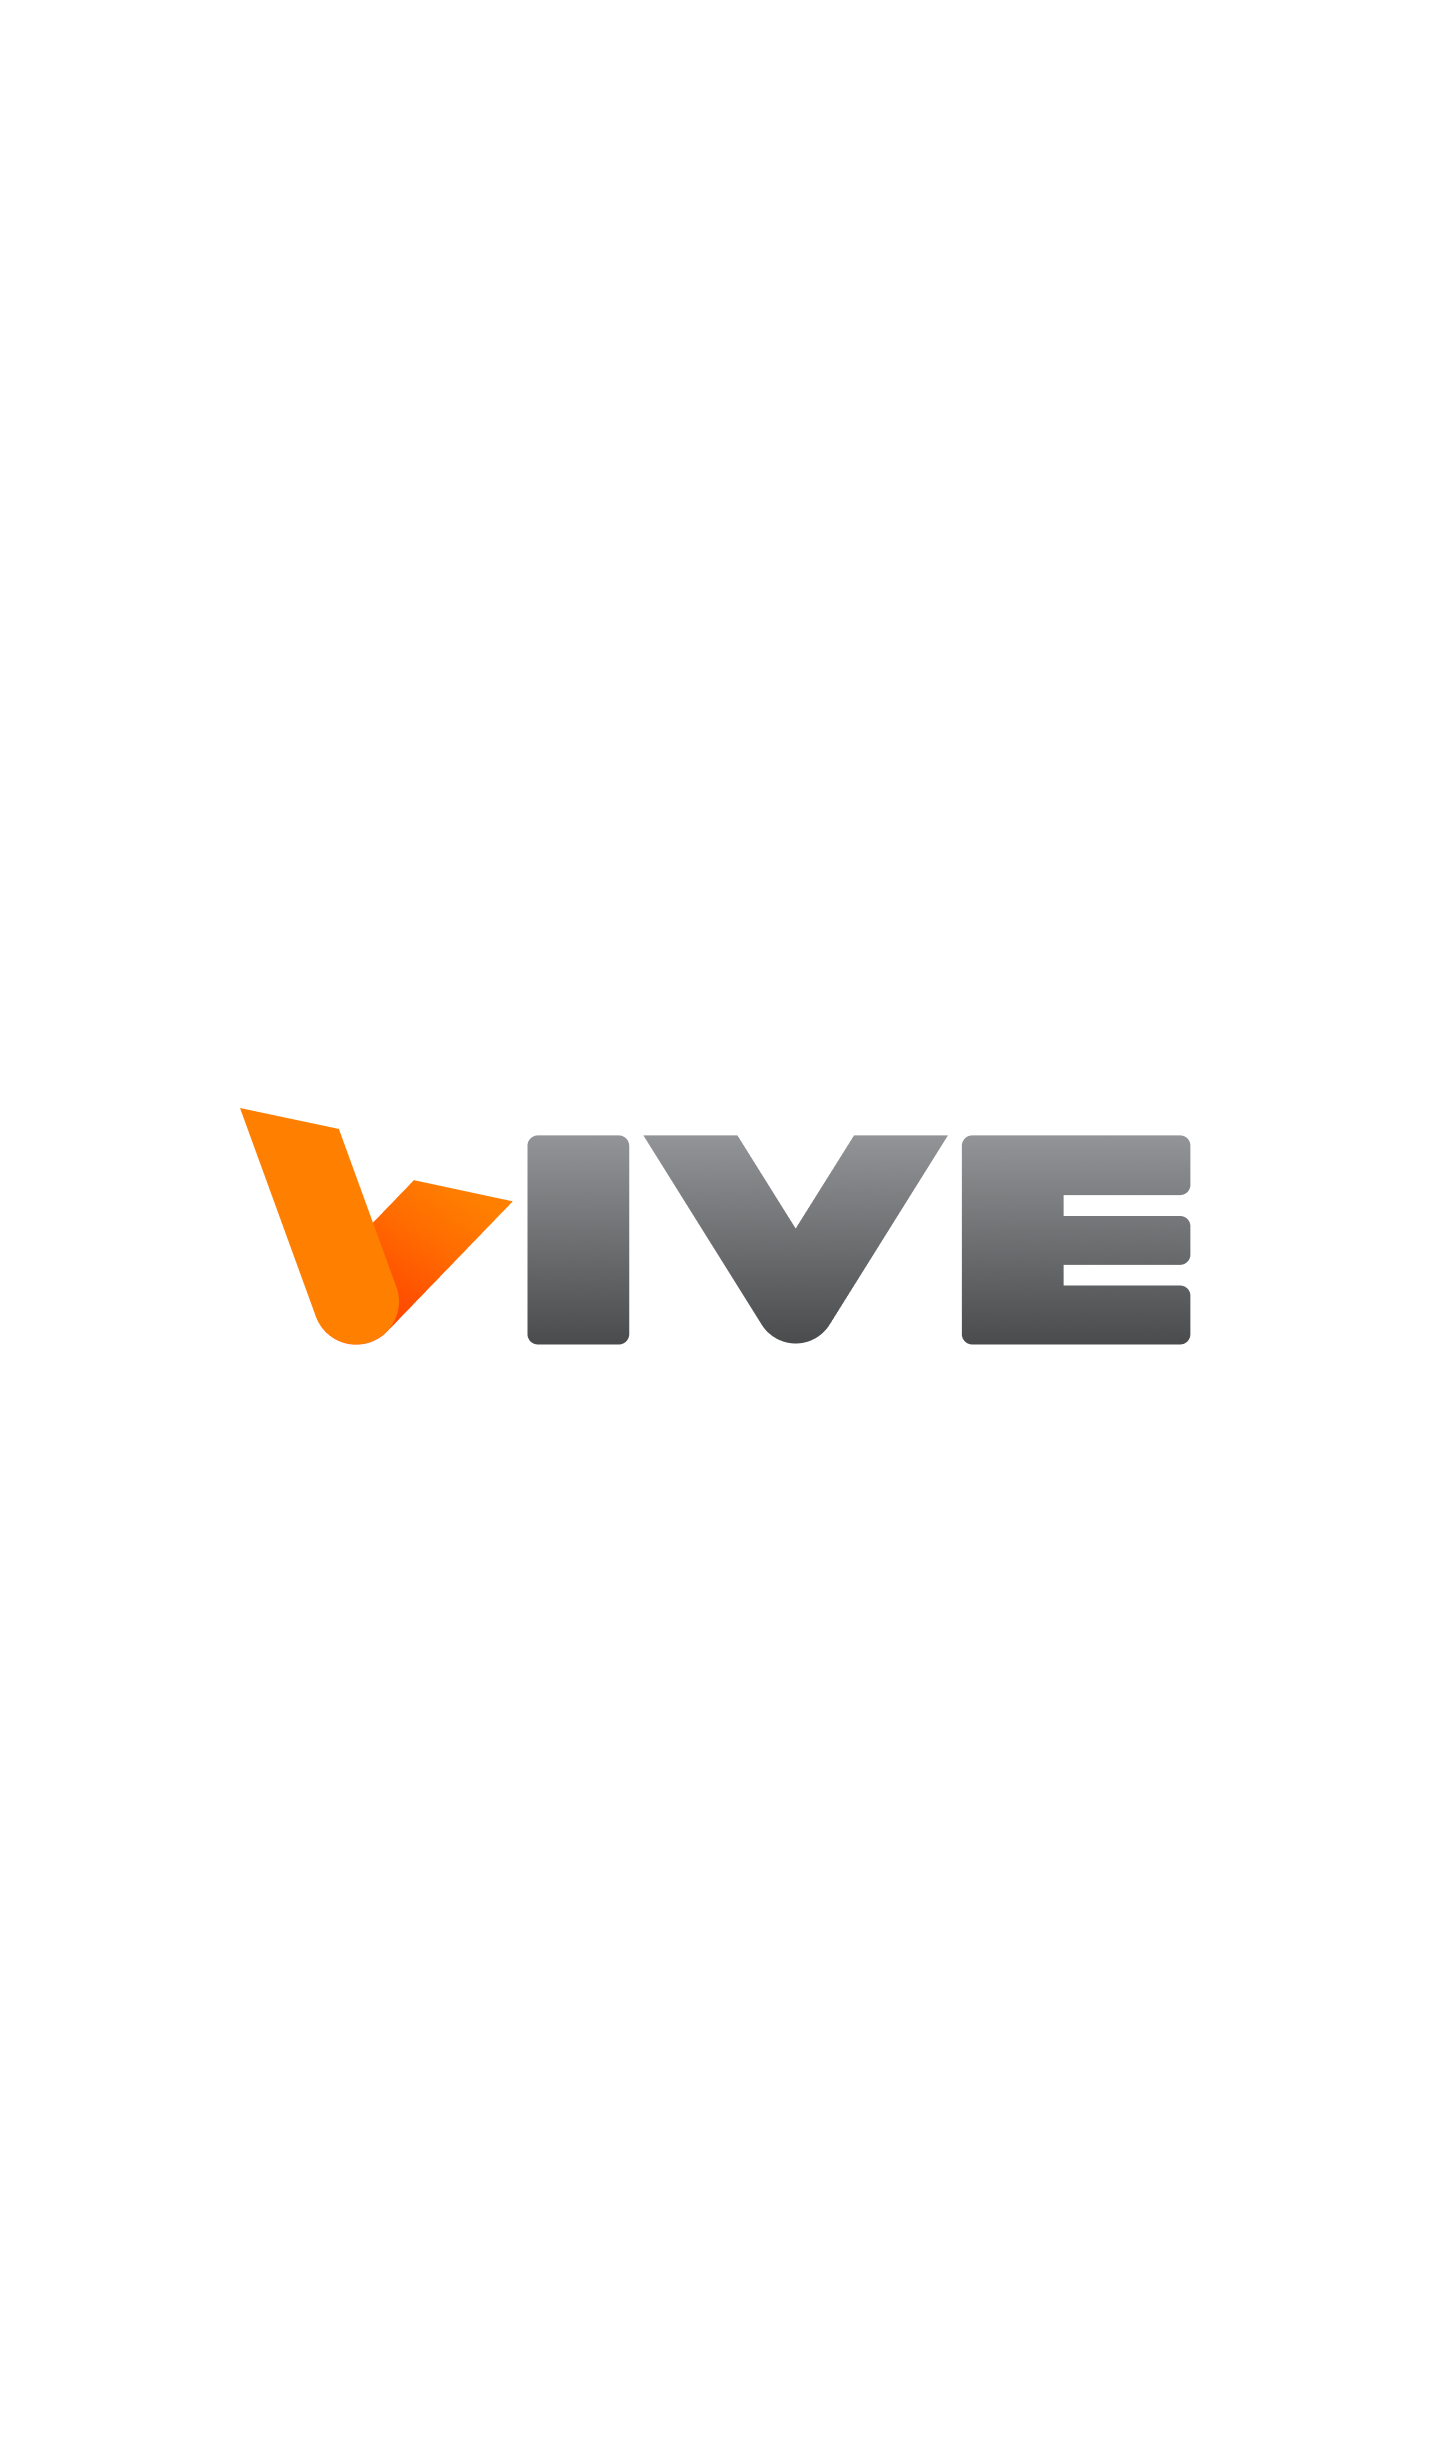 Vive - Website - Mobile - Splash